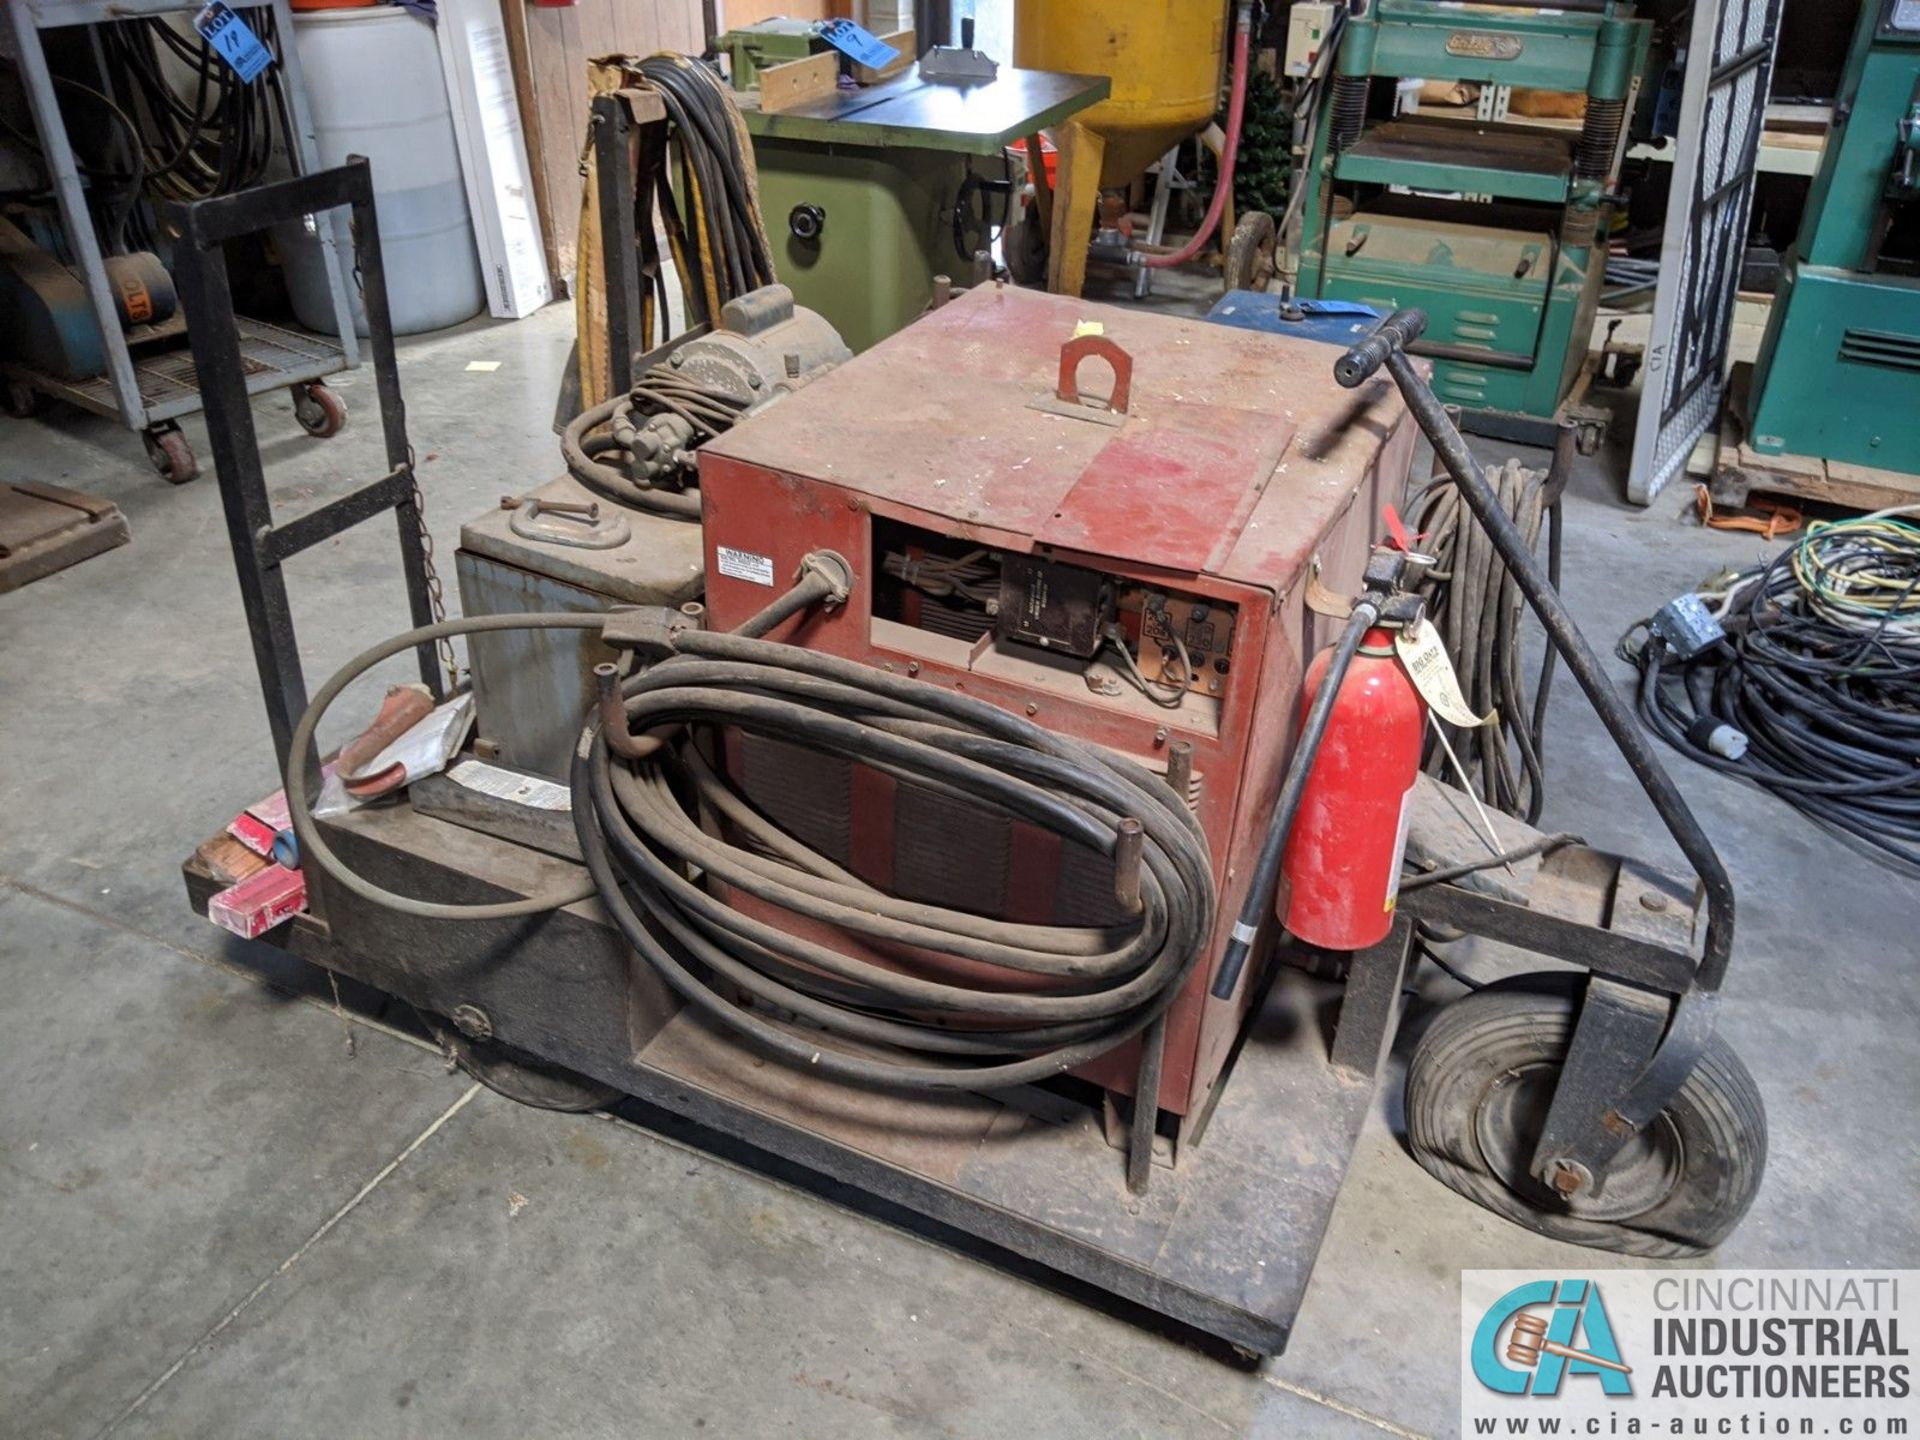 250 AMP LINCOLN MODEL TIG 250/250 WELDER; S/N 533770, MOUNTED ON CART W/ LEADS & AIRCO CHILLER (8635 - Image 2 of 5